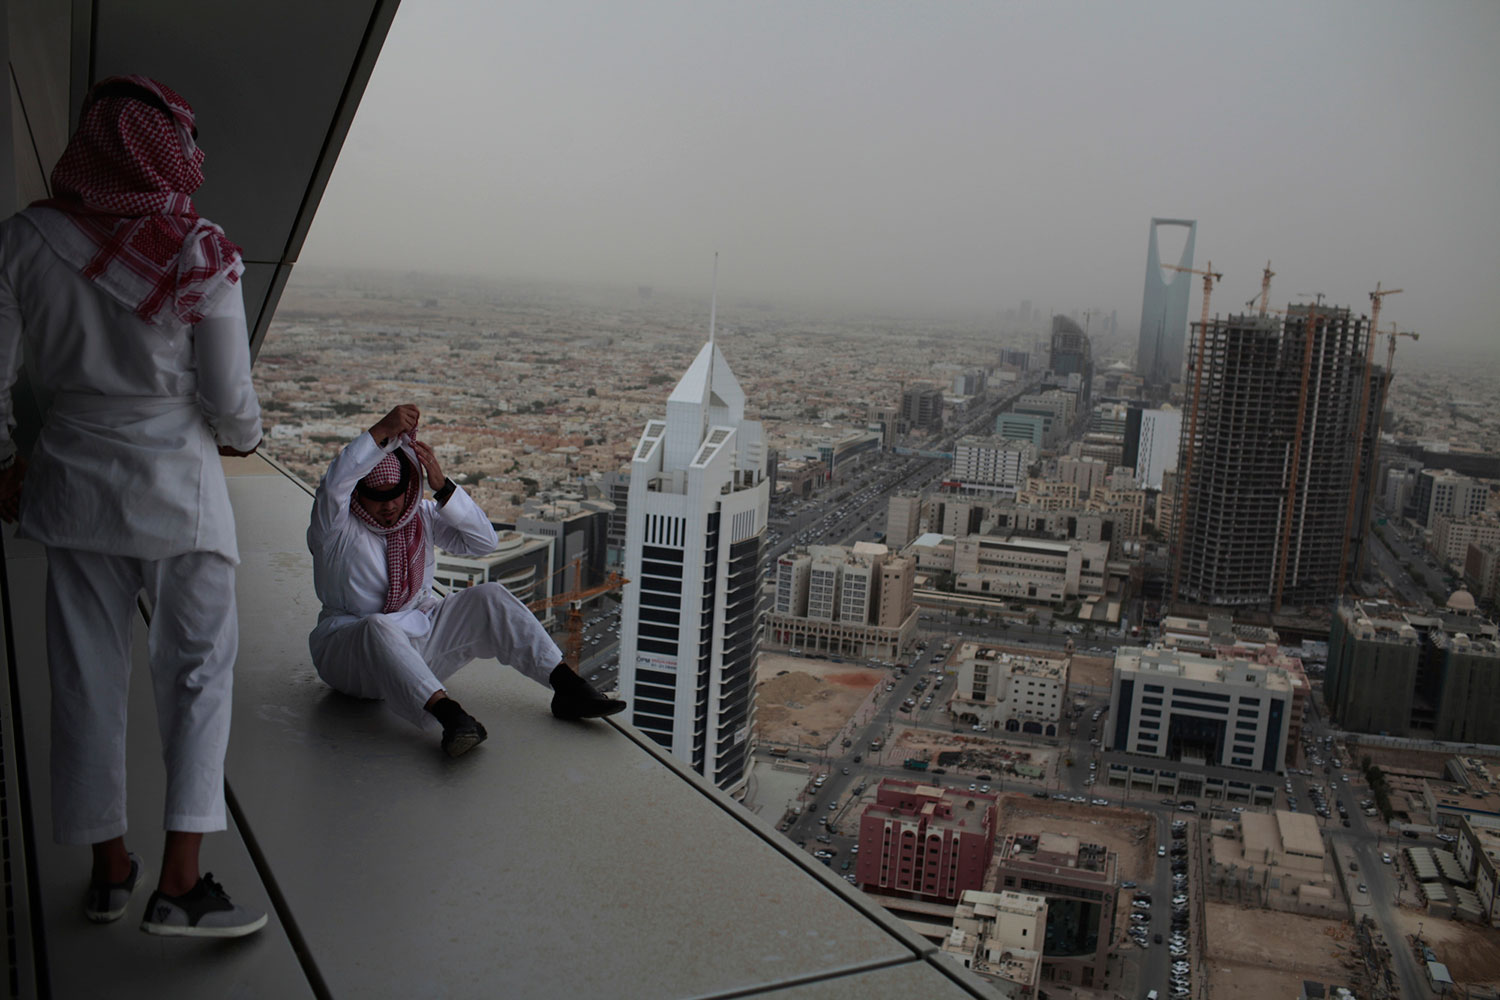 Riyadh, Saudi Arabia. May 23, 2011.                                Upper class Saudi youth dare each other inch closer and closer to the ledge of a high-rise building in Riyadh. In country with a high standard of living but very few options for entertainment (cinemas and clubs are banned), Saudi youth resort to the most random things to entertain themselves.